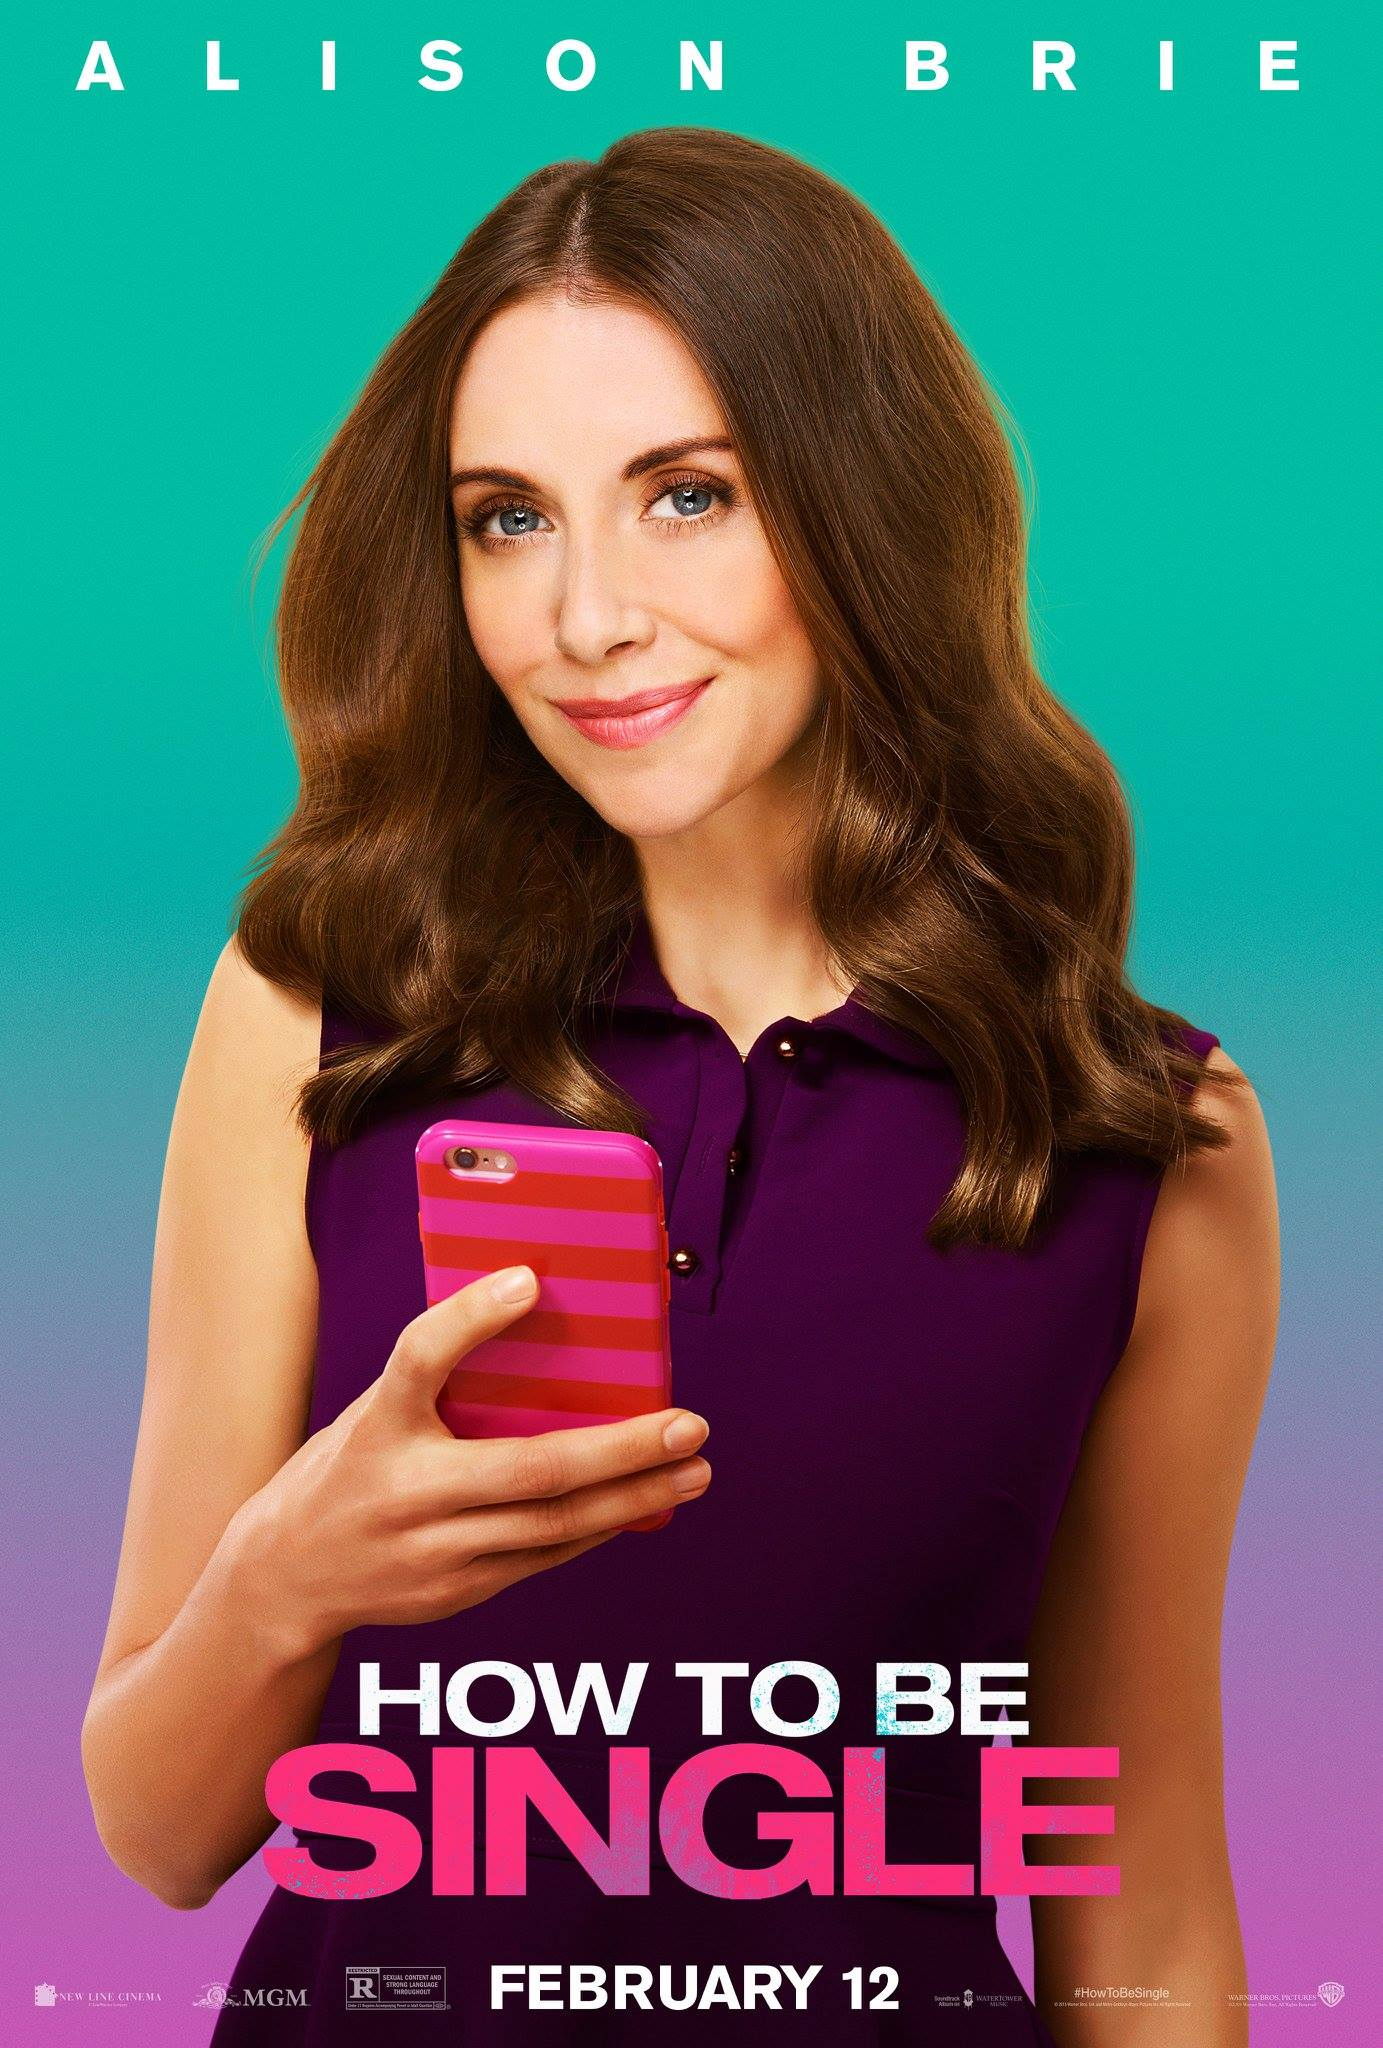 How To Be Single Trailer And Poster Revealed